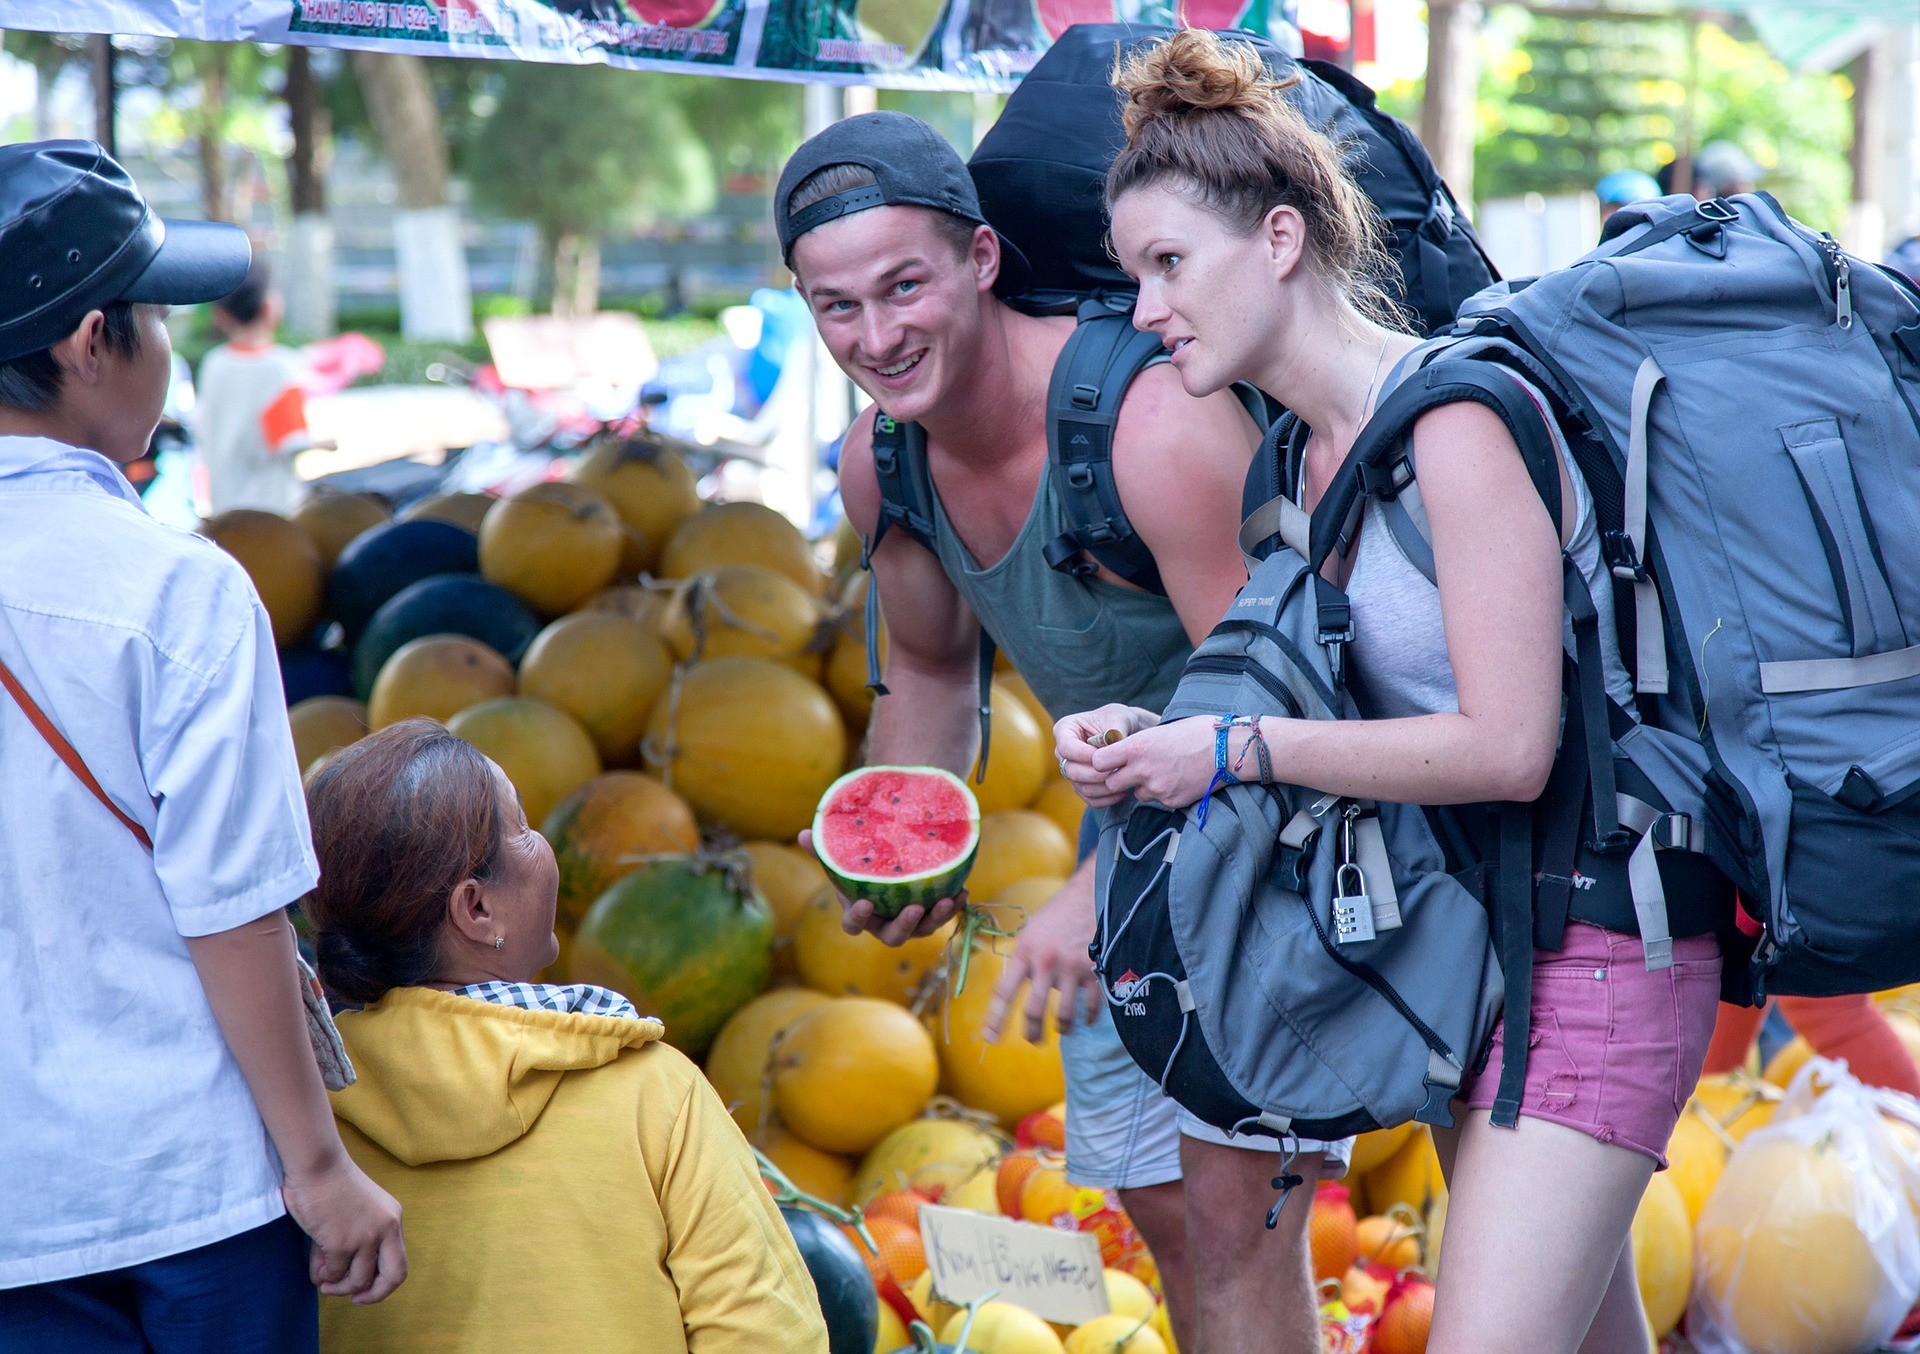 Backpacker man and woman in Vietnam at market with backpacks